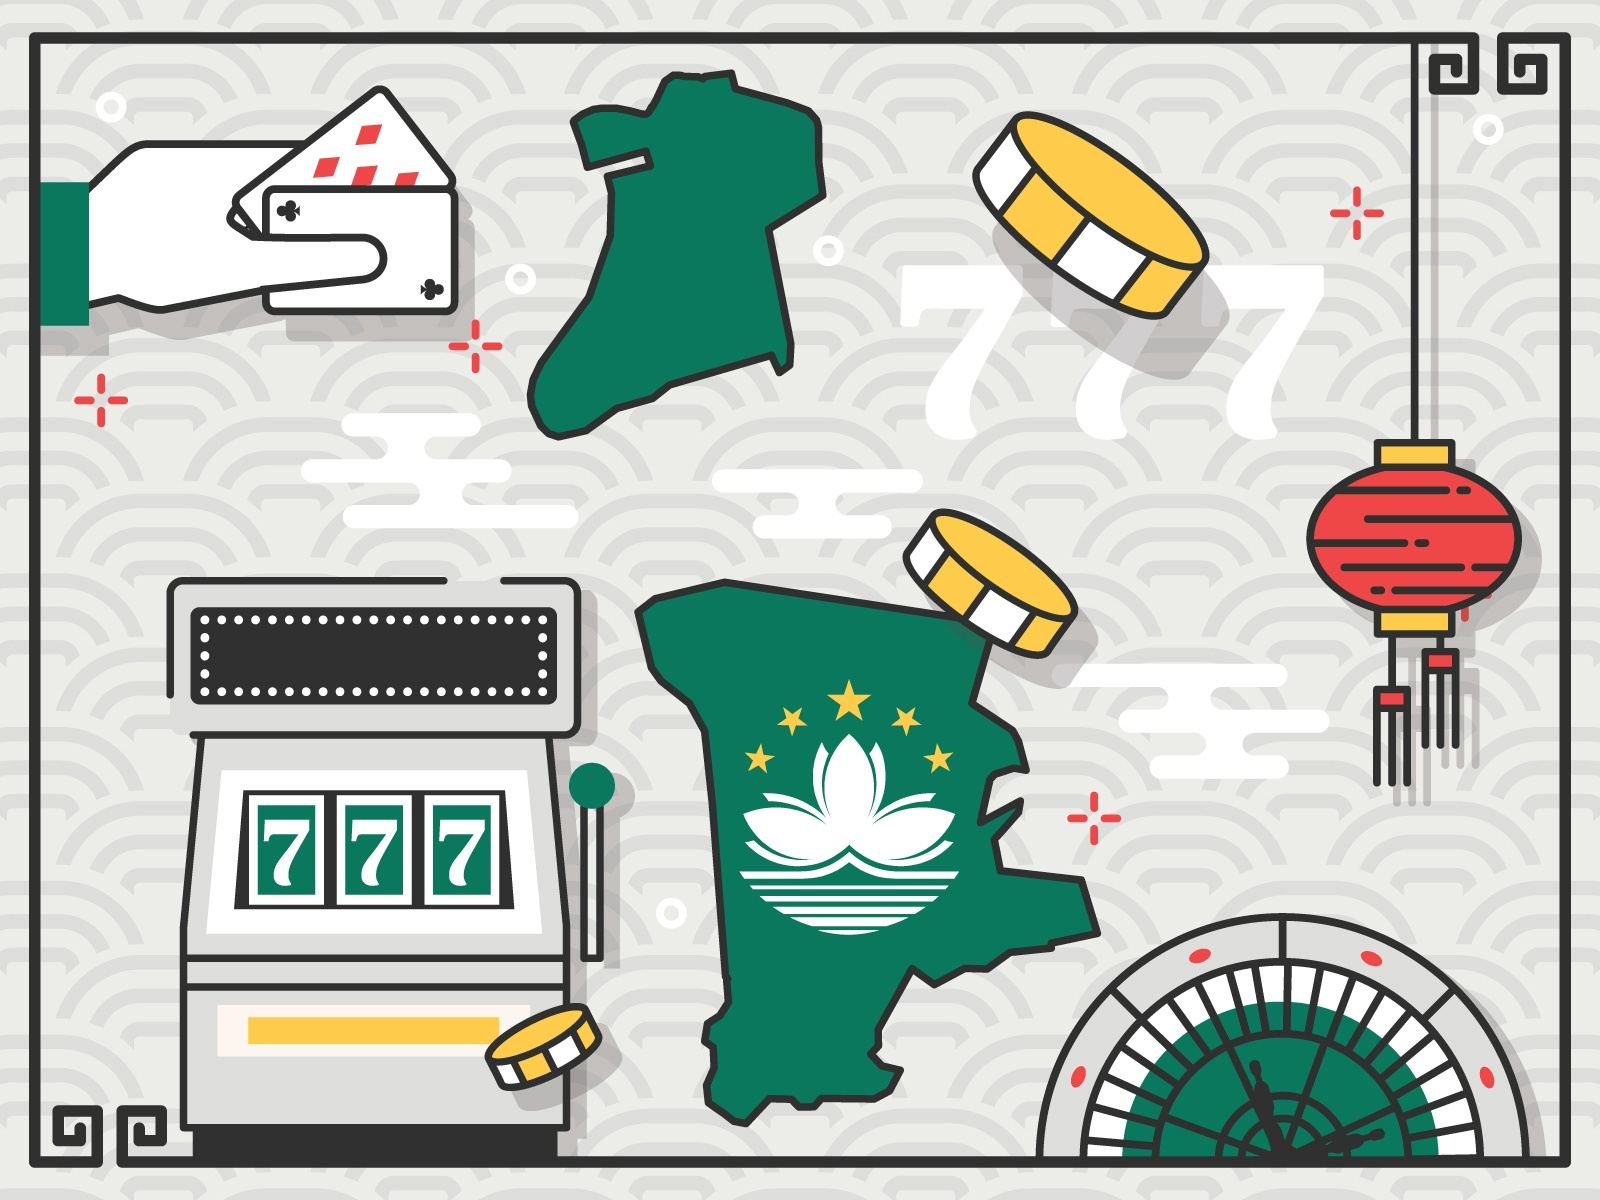 Image showing map of Macau with gambling illustrations surrounding it